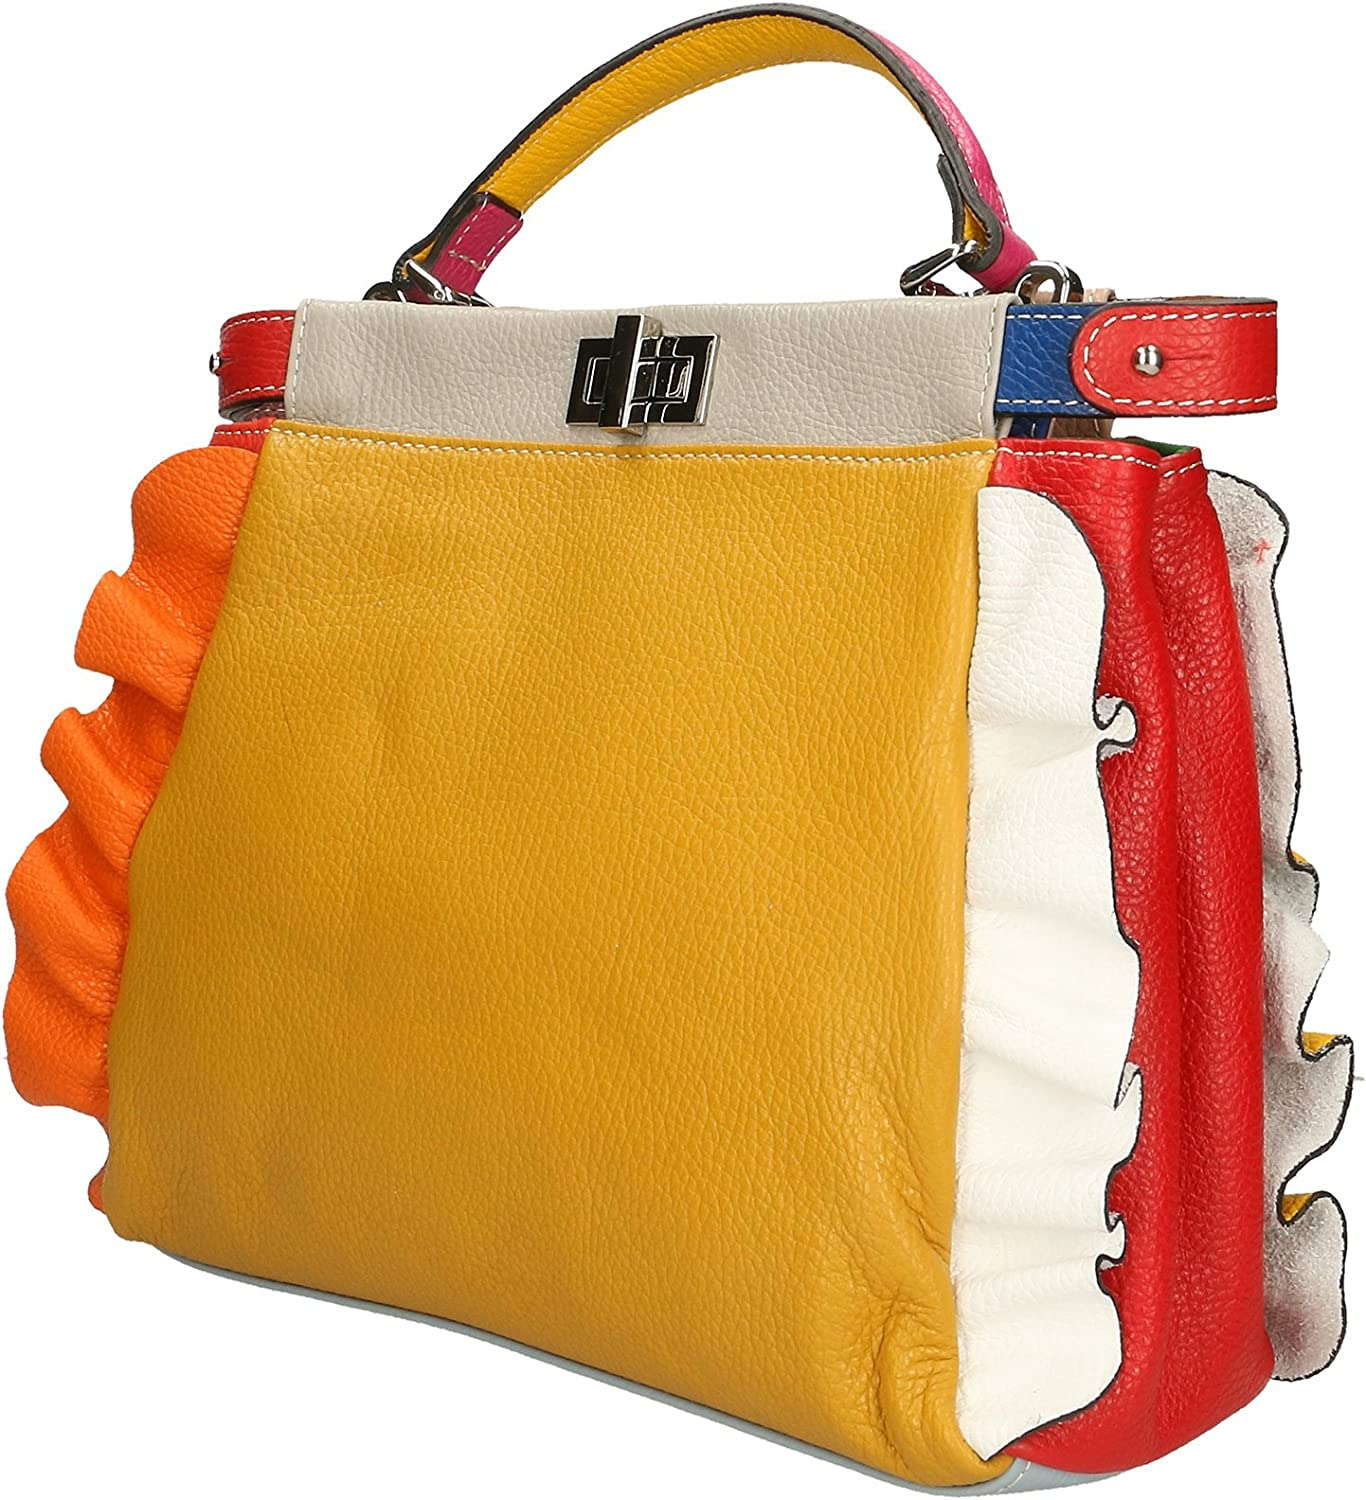 Aren - Woman Handbag in Genuine Leather Made in Italy - 32x26x12 Cm Mustard - Beige